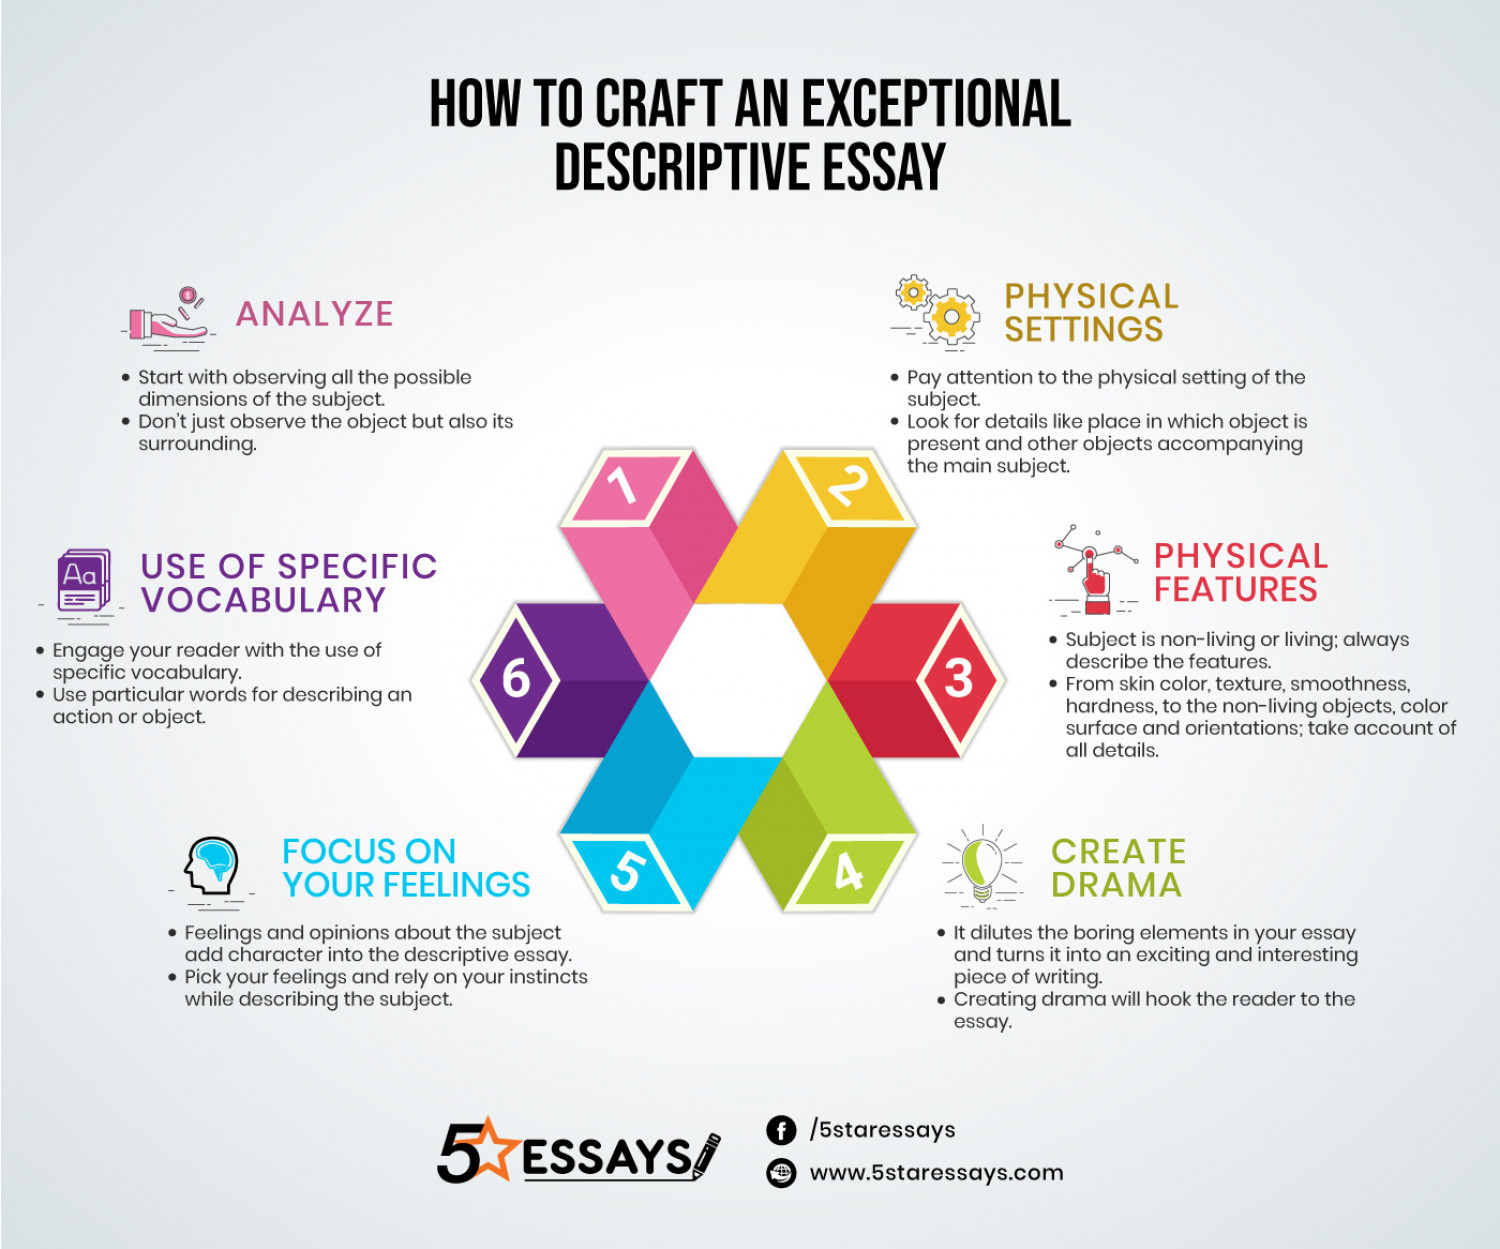 How To Craft An Exceptional Descriptive Essay Infographic